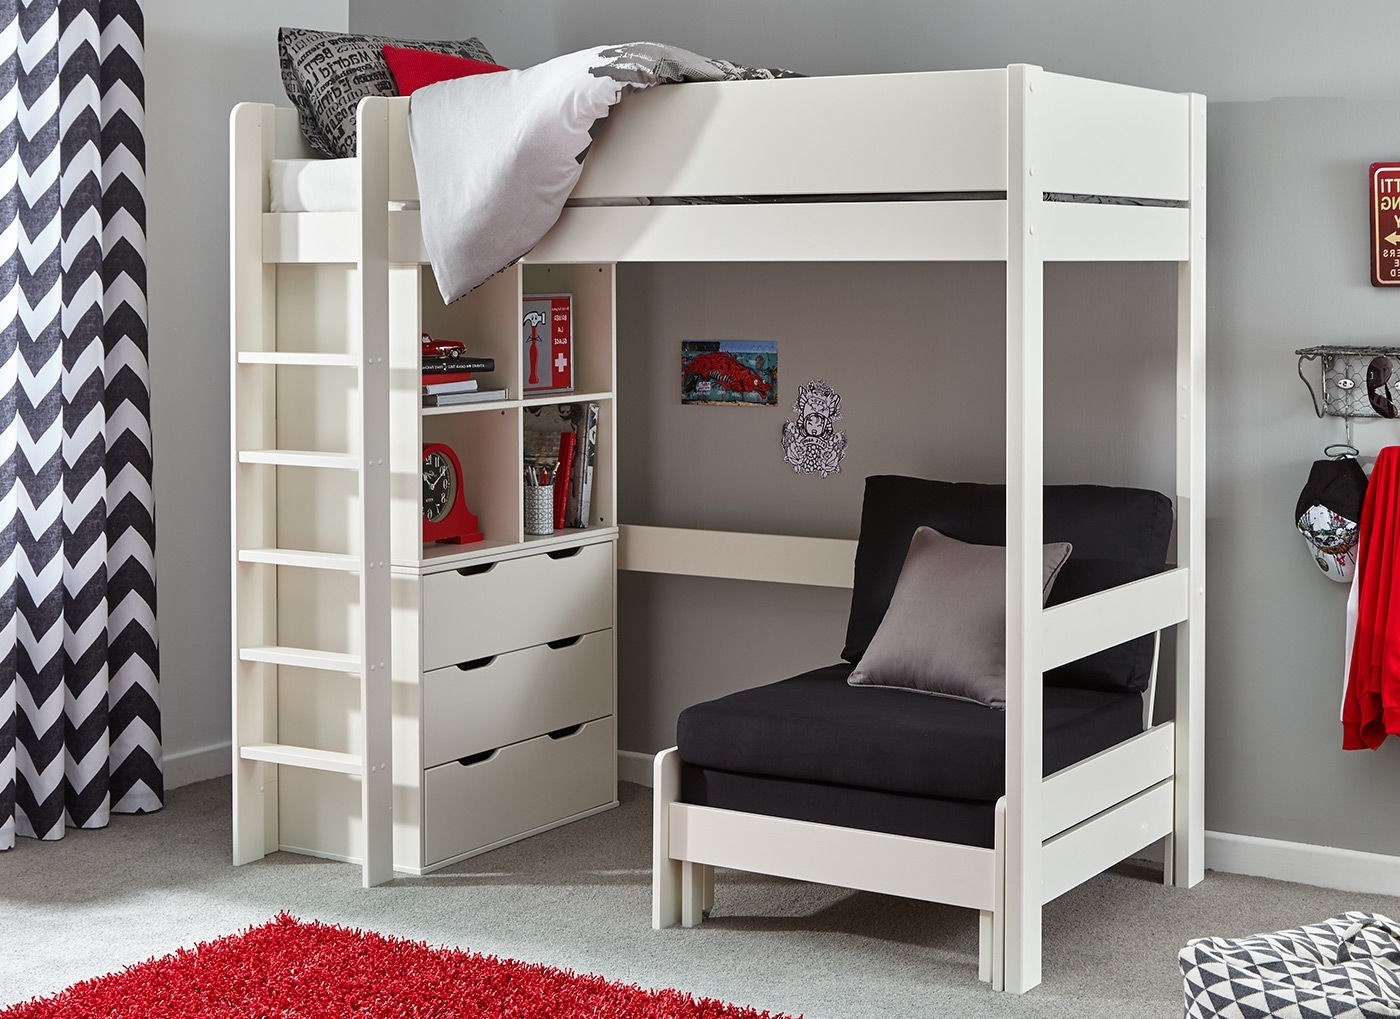 Tinsley Highsleeper With Chest And Storage – Black And White (View 15 of 15)